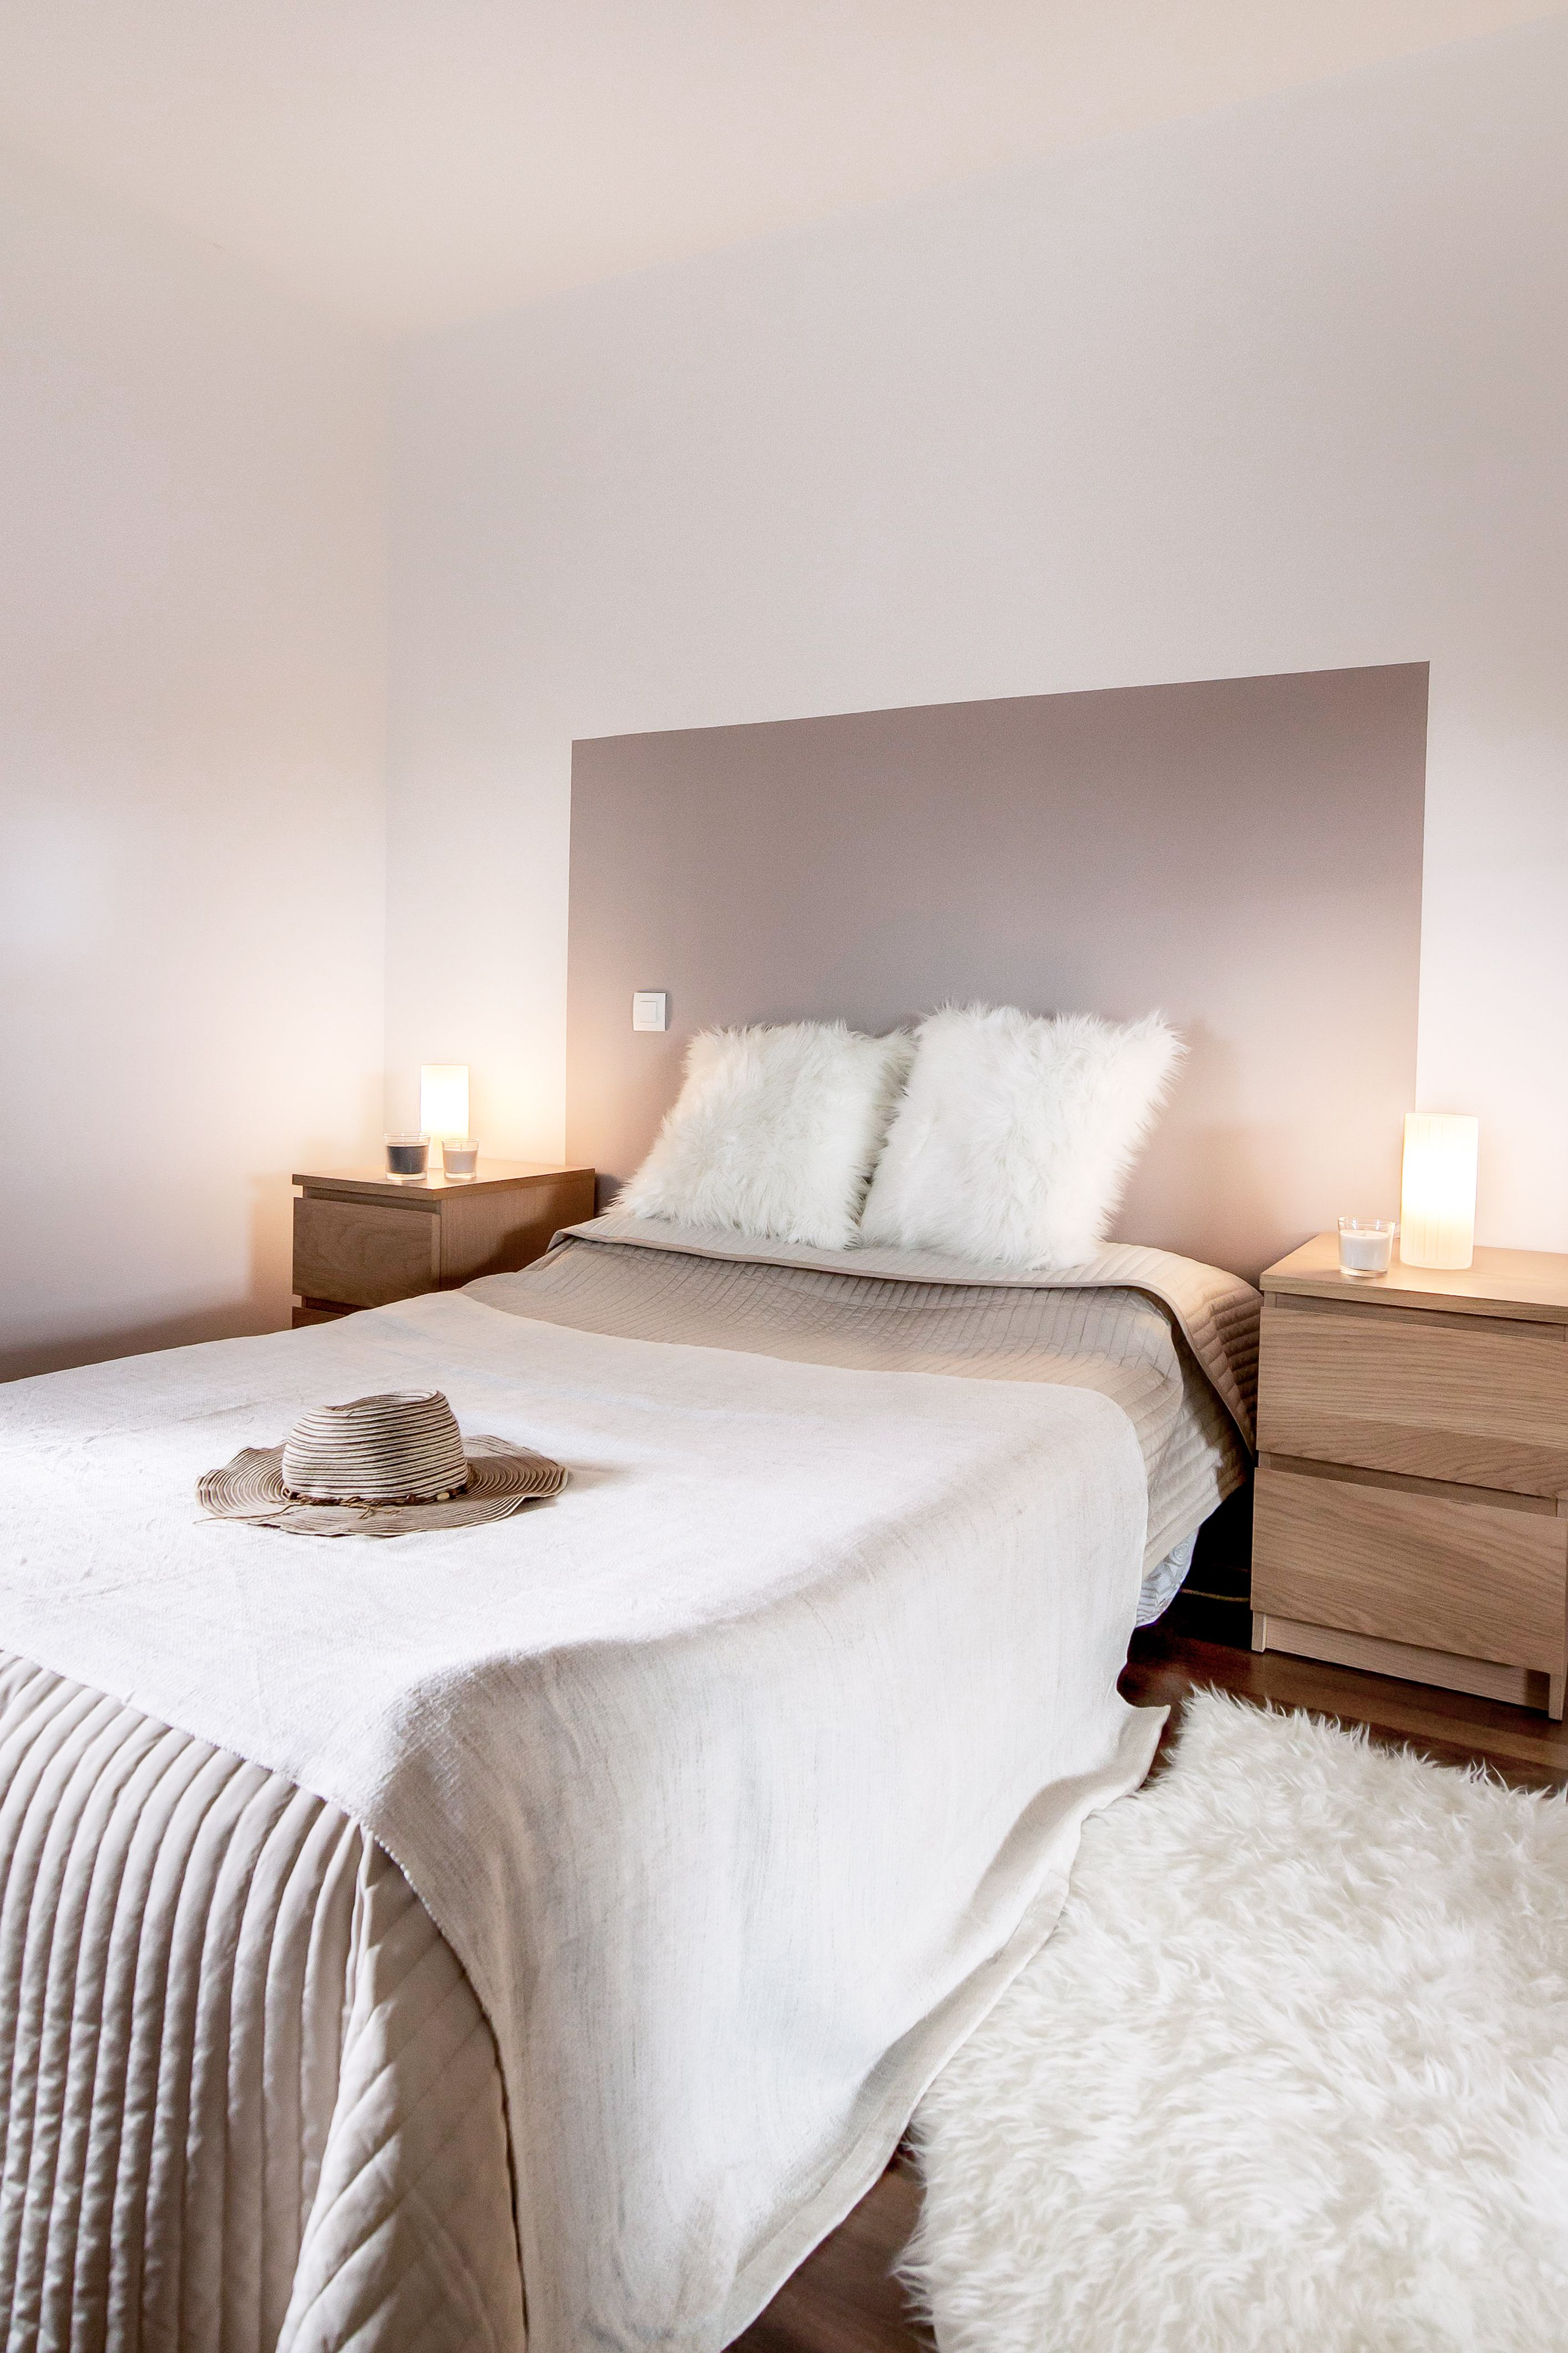 Chambre Cocoon Deco Cocooning Chambre Idee Decoration Chambre